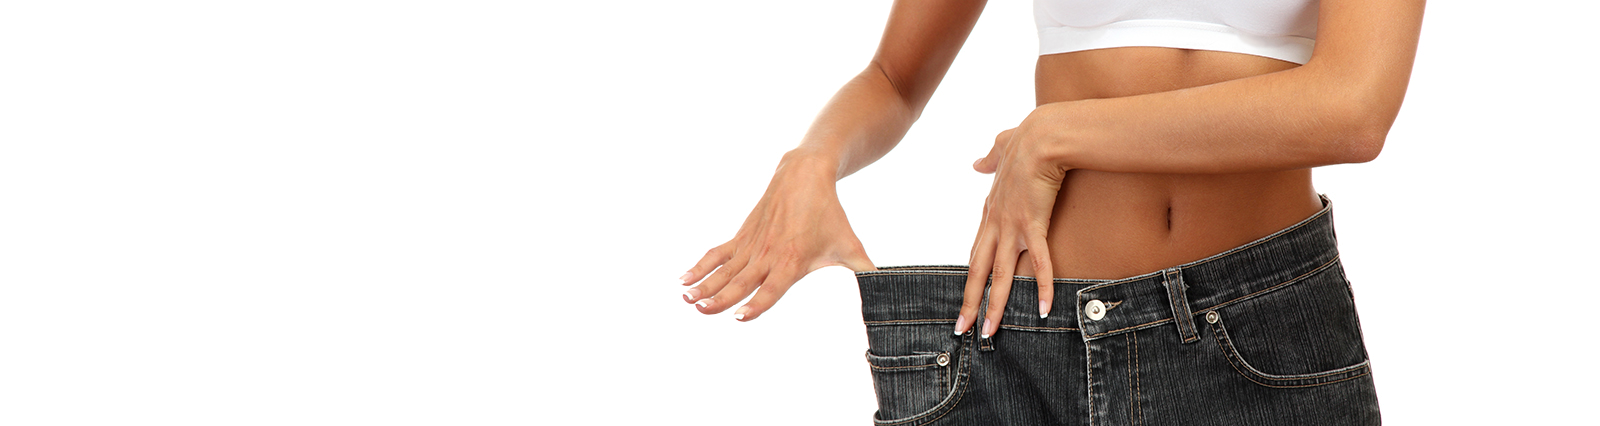 weightloss-banner